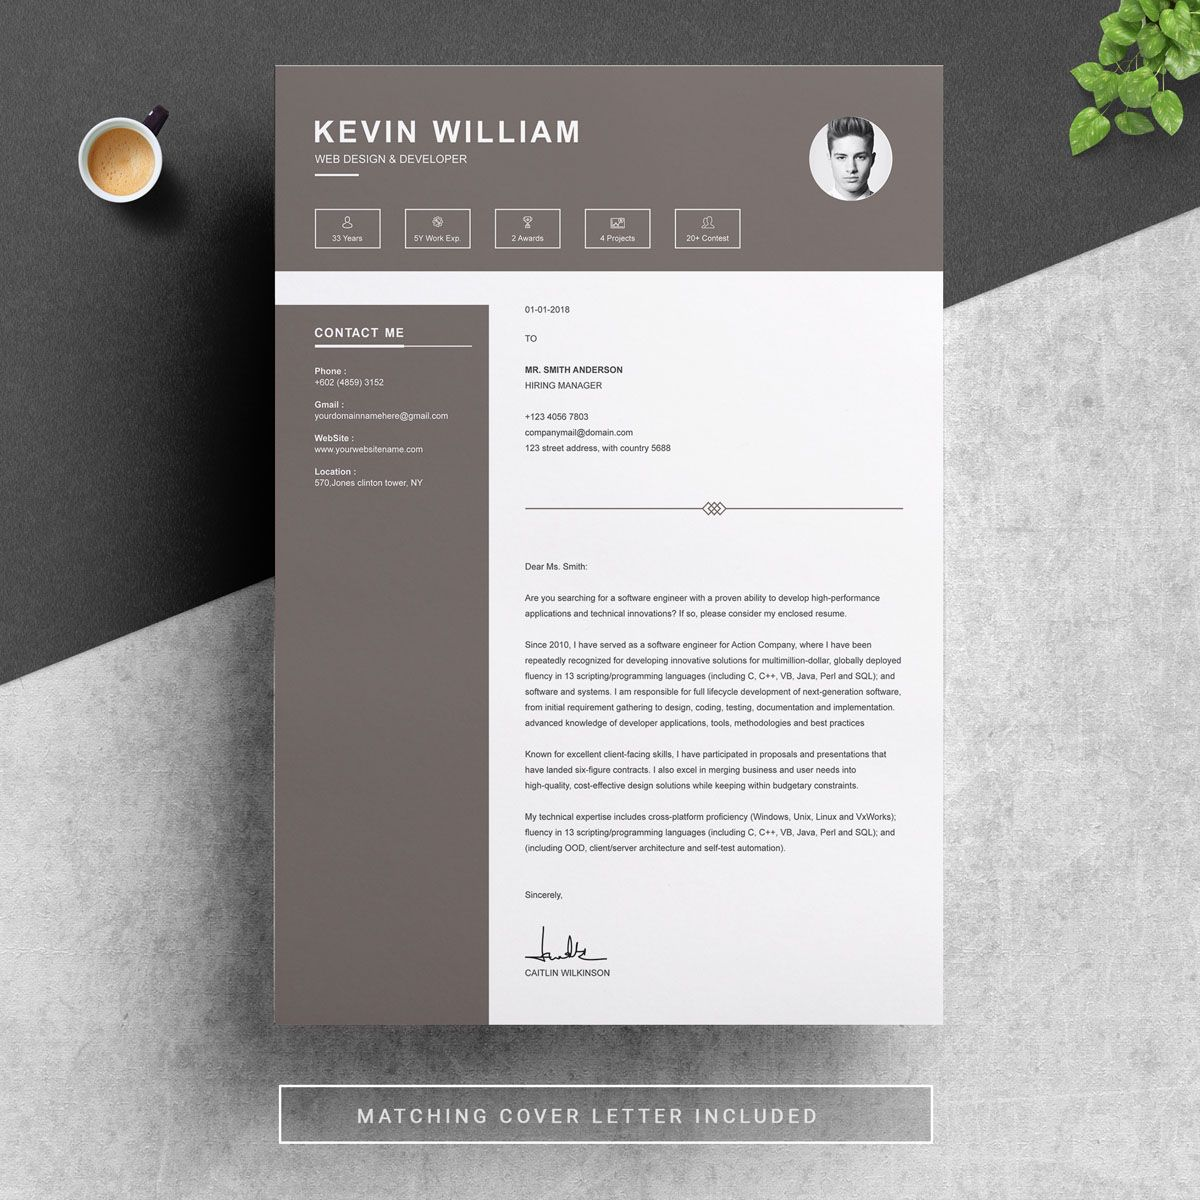 Kevin William Resume Template 74169 Templates, Resume